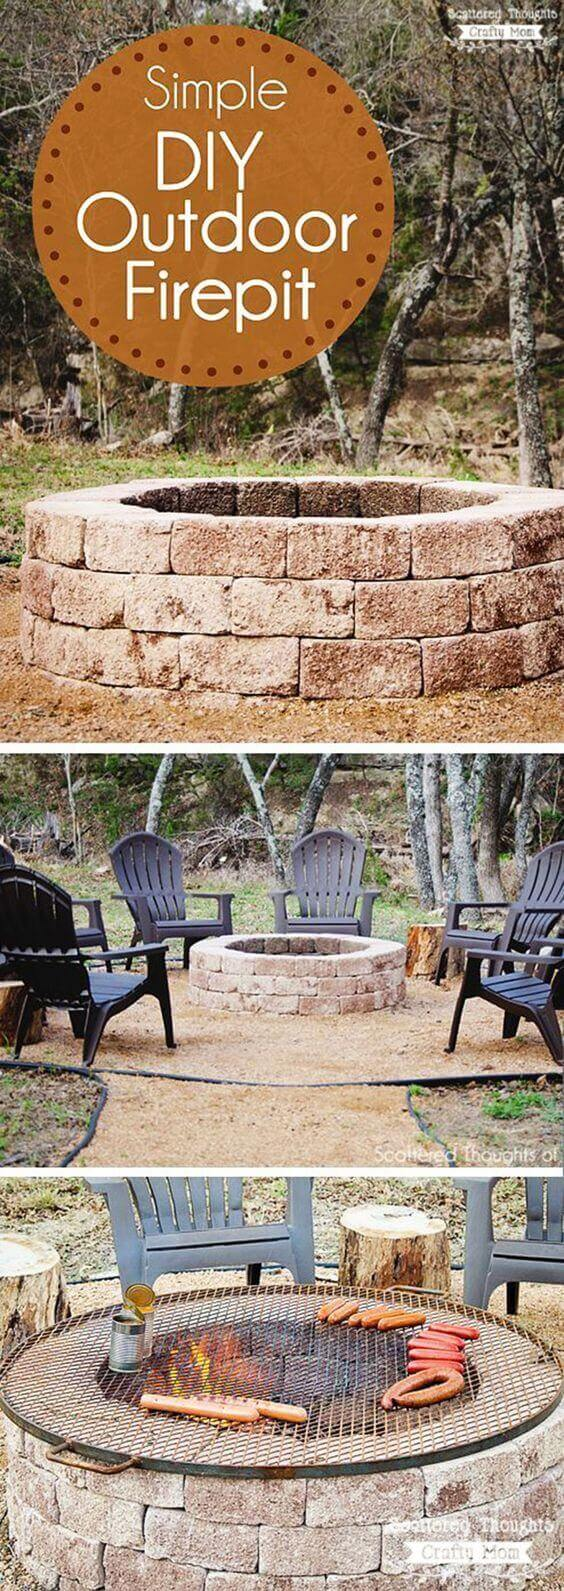 Easy fire pit ideas uk to make s'mores with your family